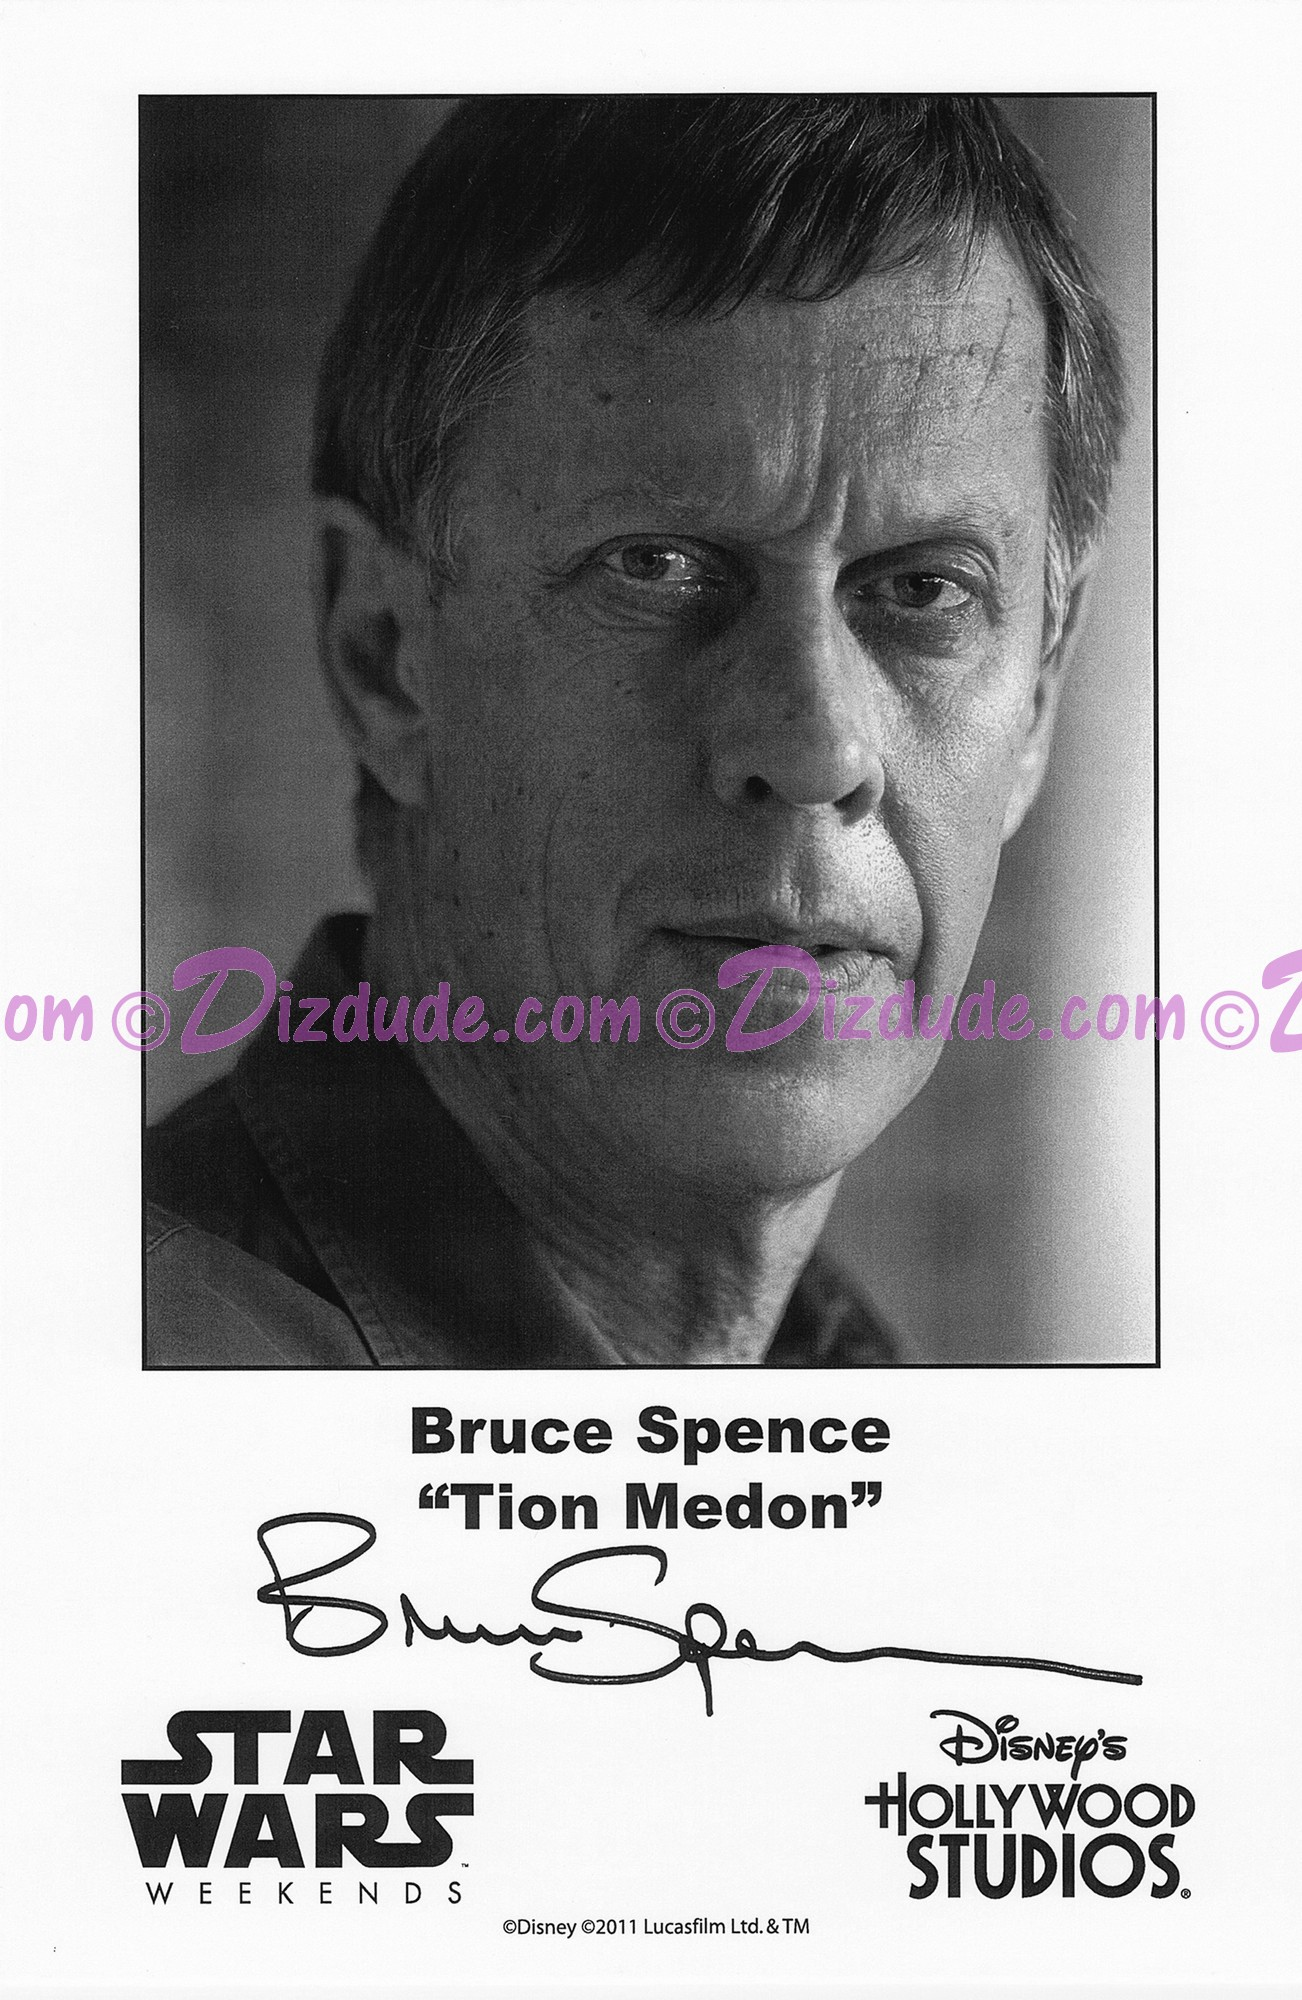 Bruce Spence who played Tion Medon Presigned Official Star Wars Weekends 2011 Celebrity Collector Photo